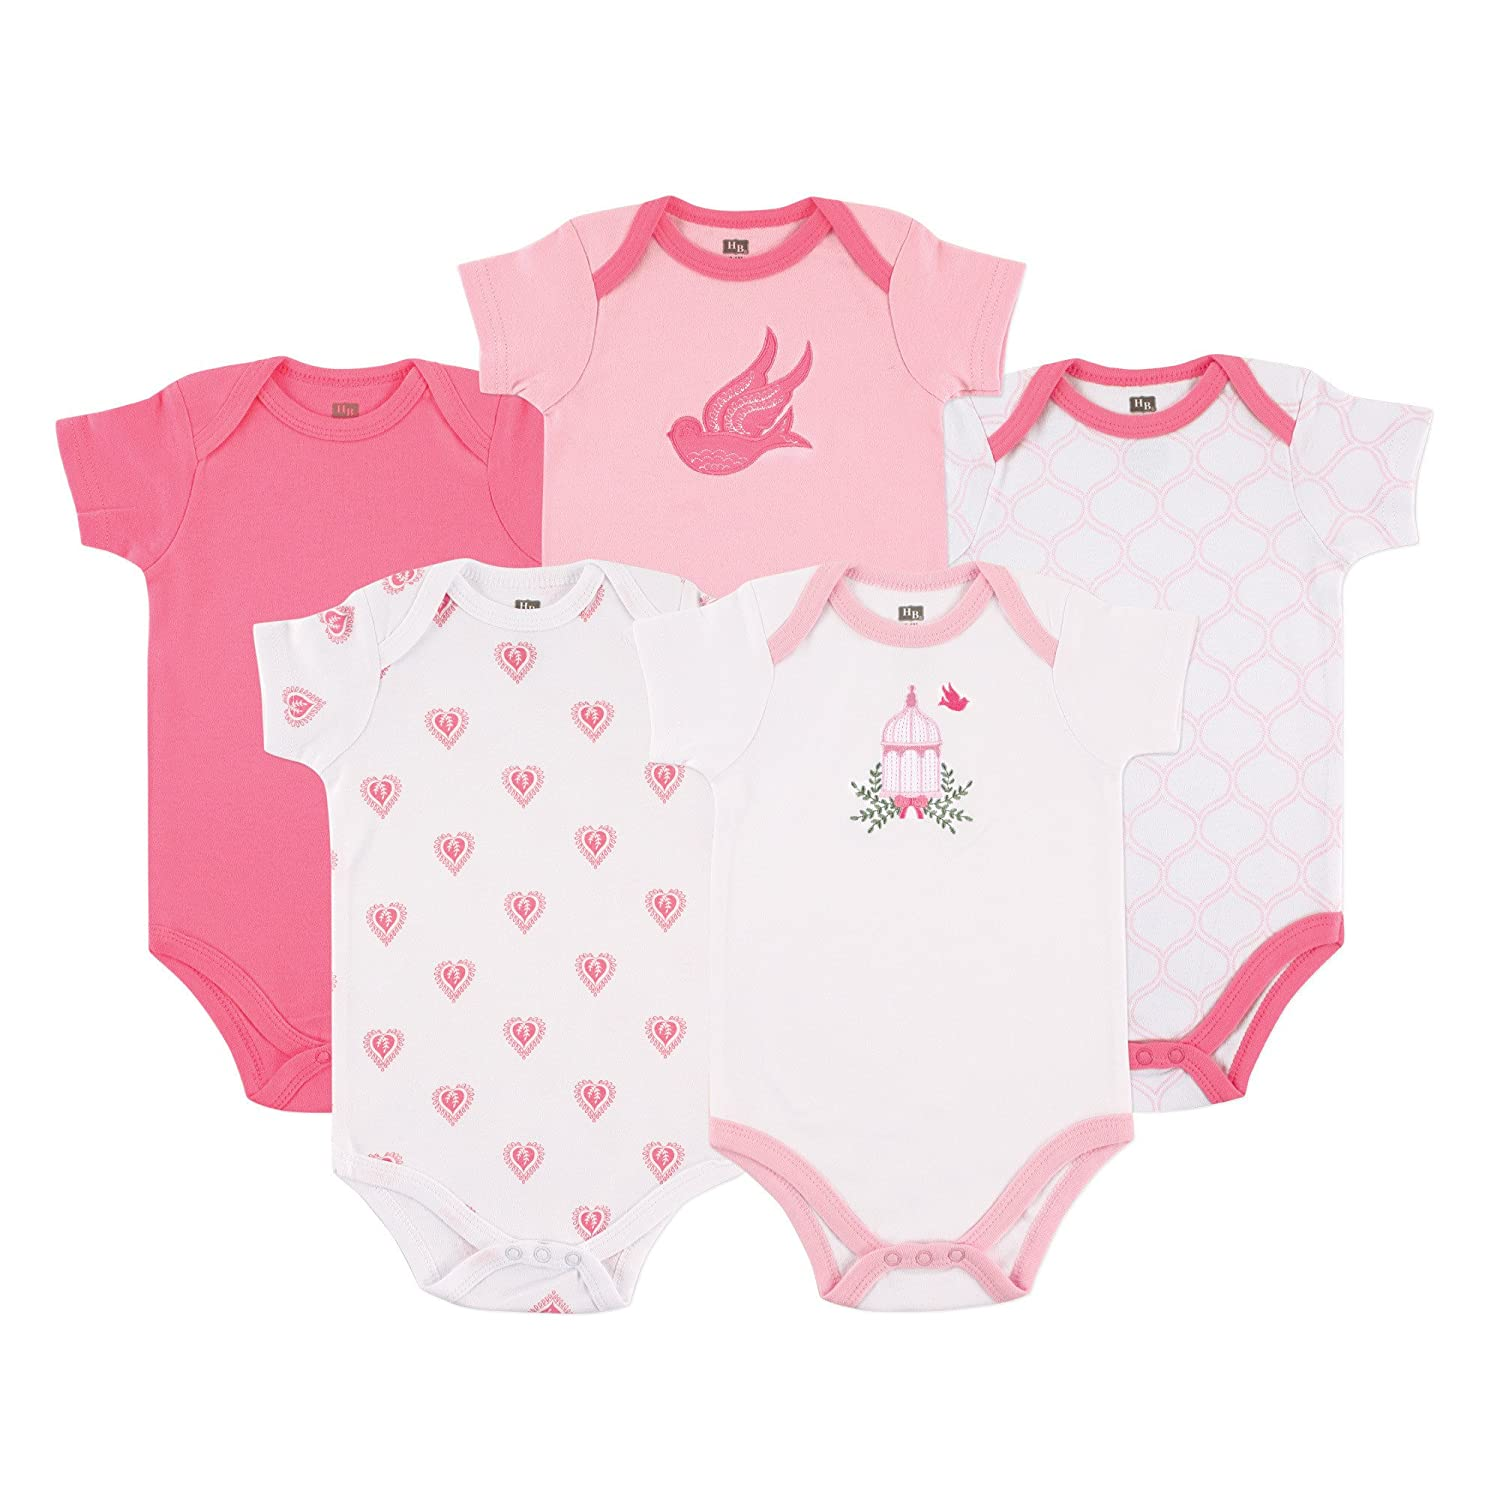 Hudson Baby Cotton Bodysuits 10151444